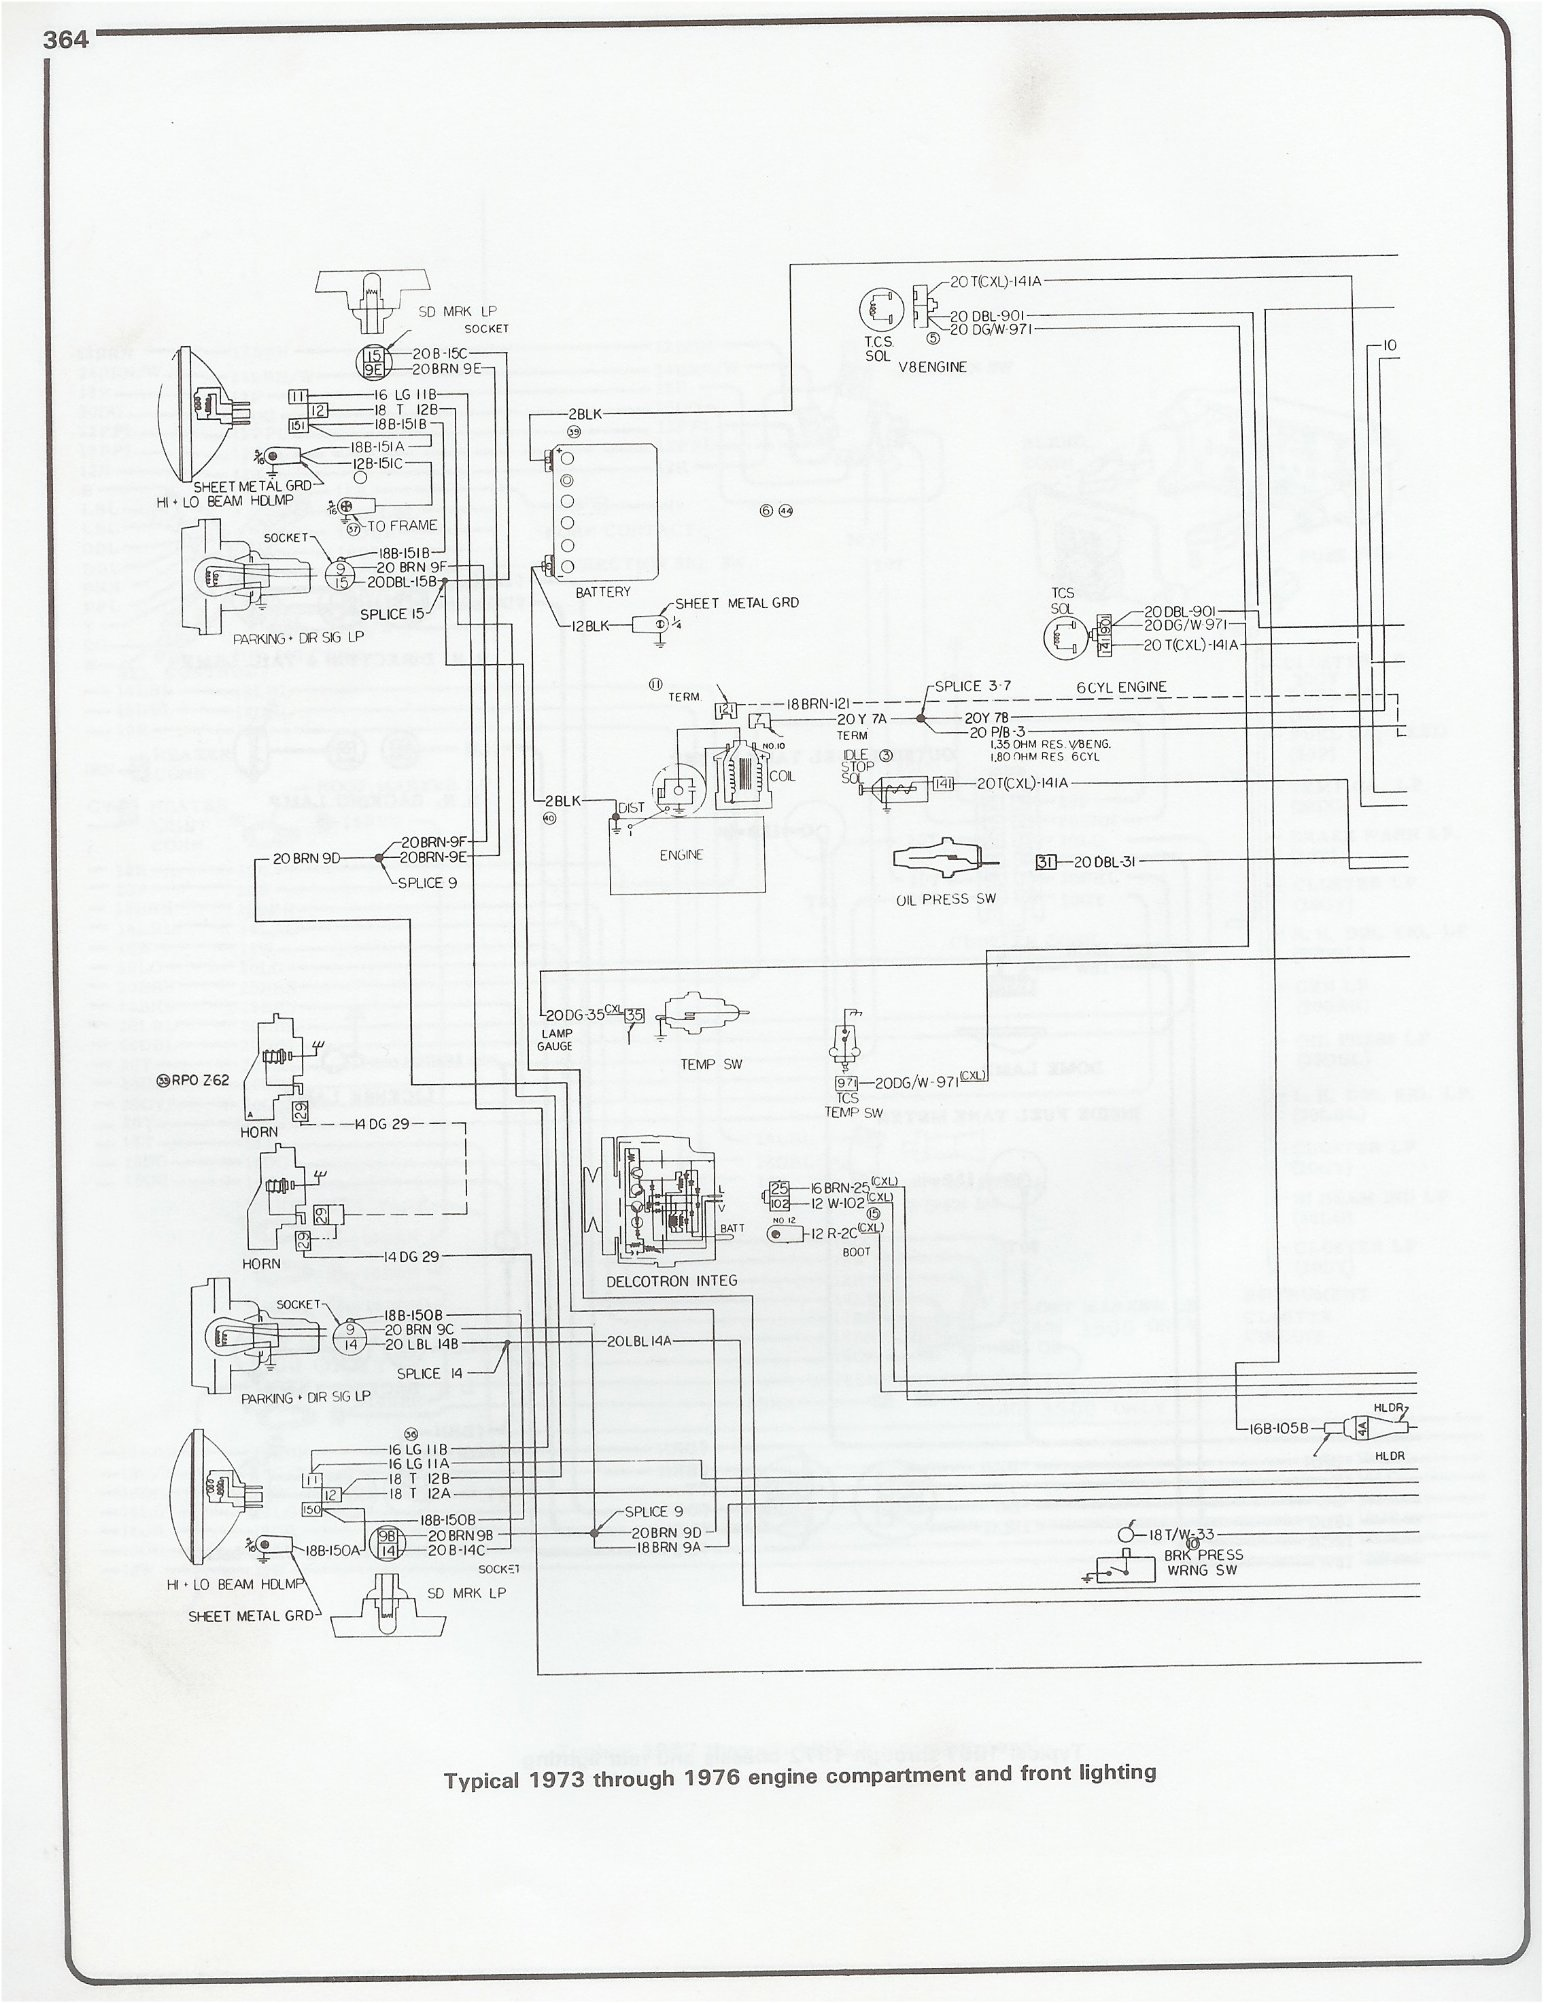 Complete 73 87 Wiring Diagrams Chevy Cavalier Diagram Radio 76 Engine And Front Lighting